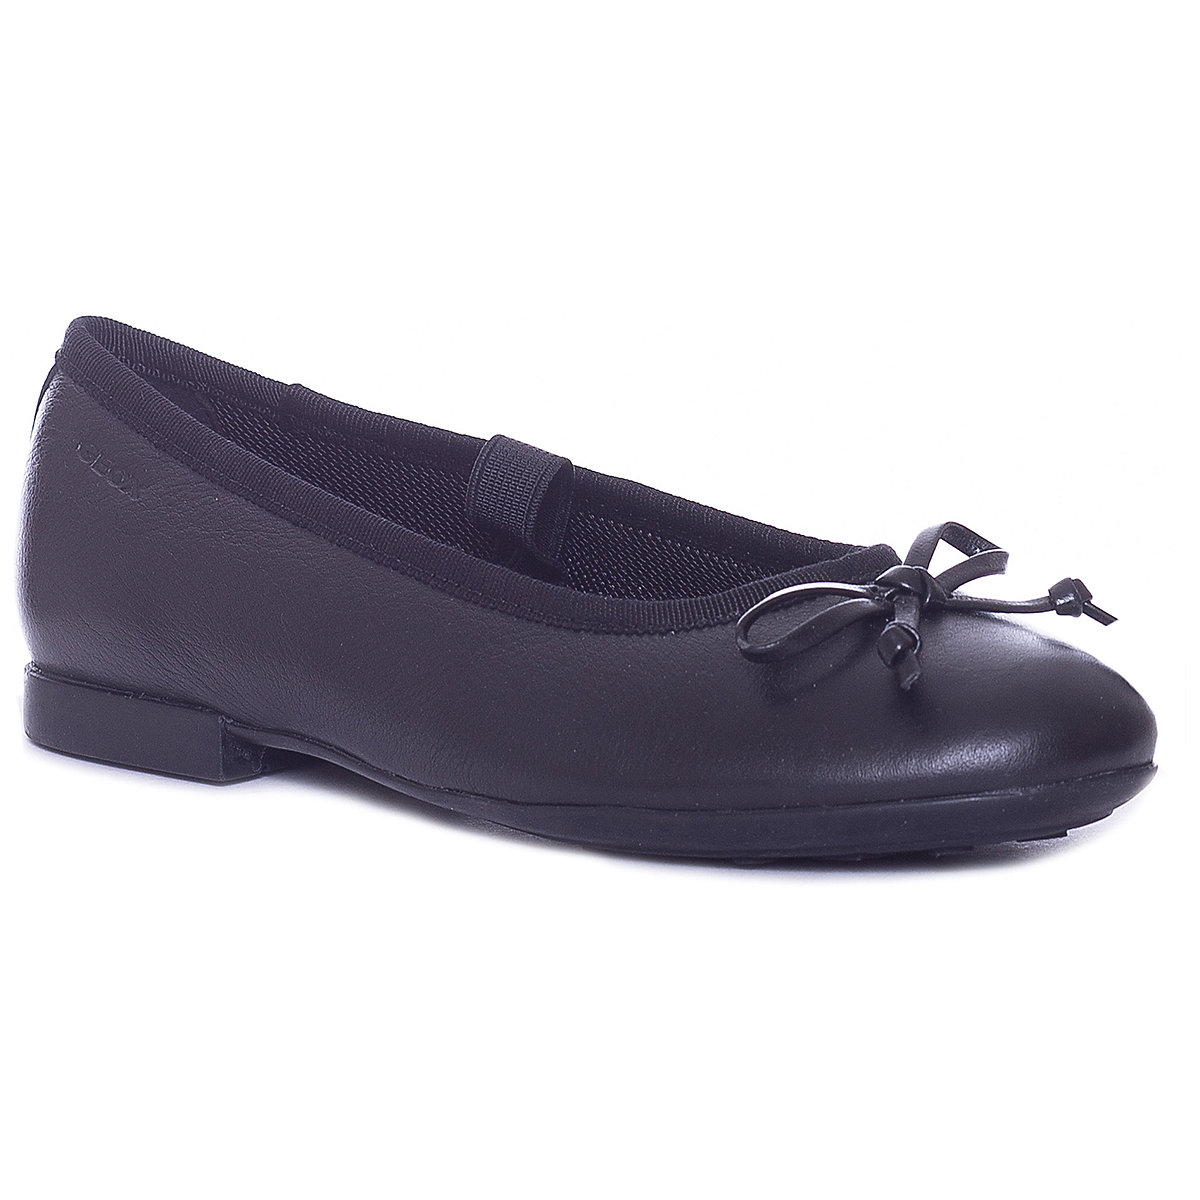 GEOX Leather Shoes 8786663 For girls girl children shoes Leather MTpromo